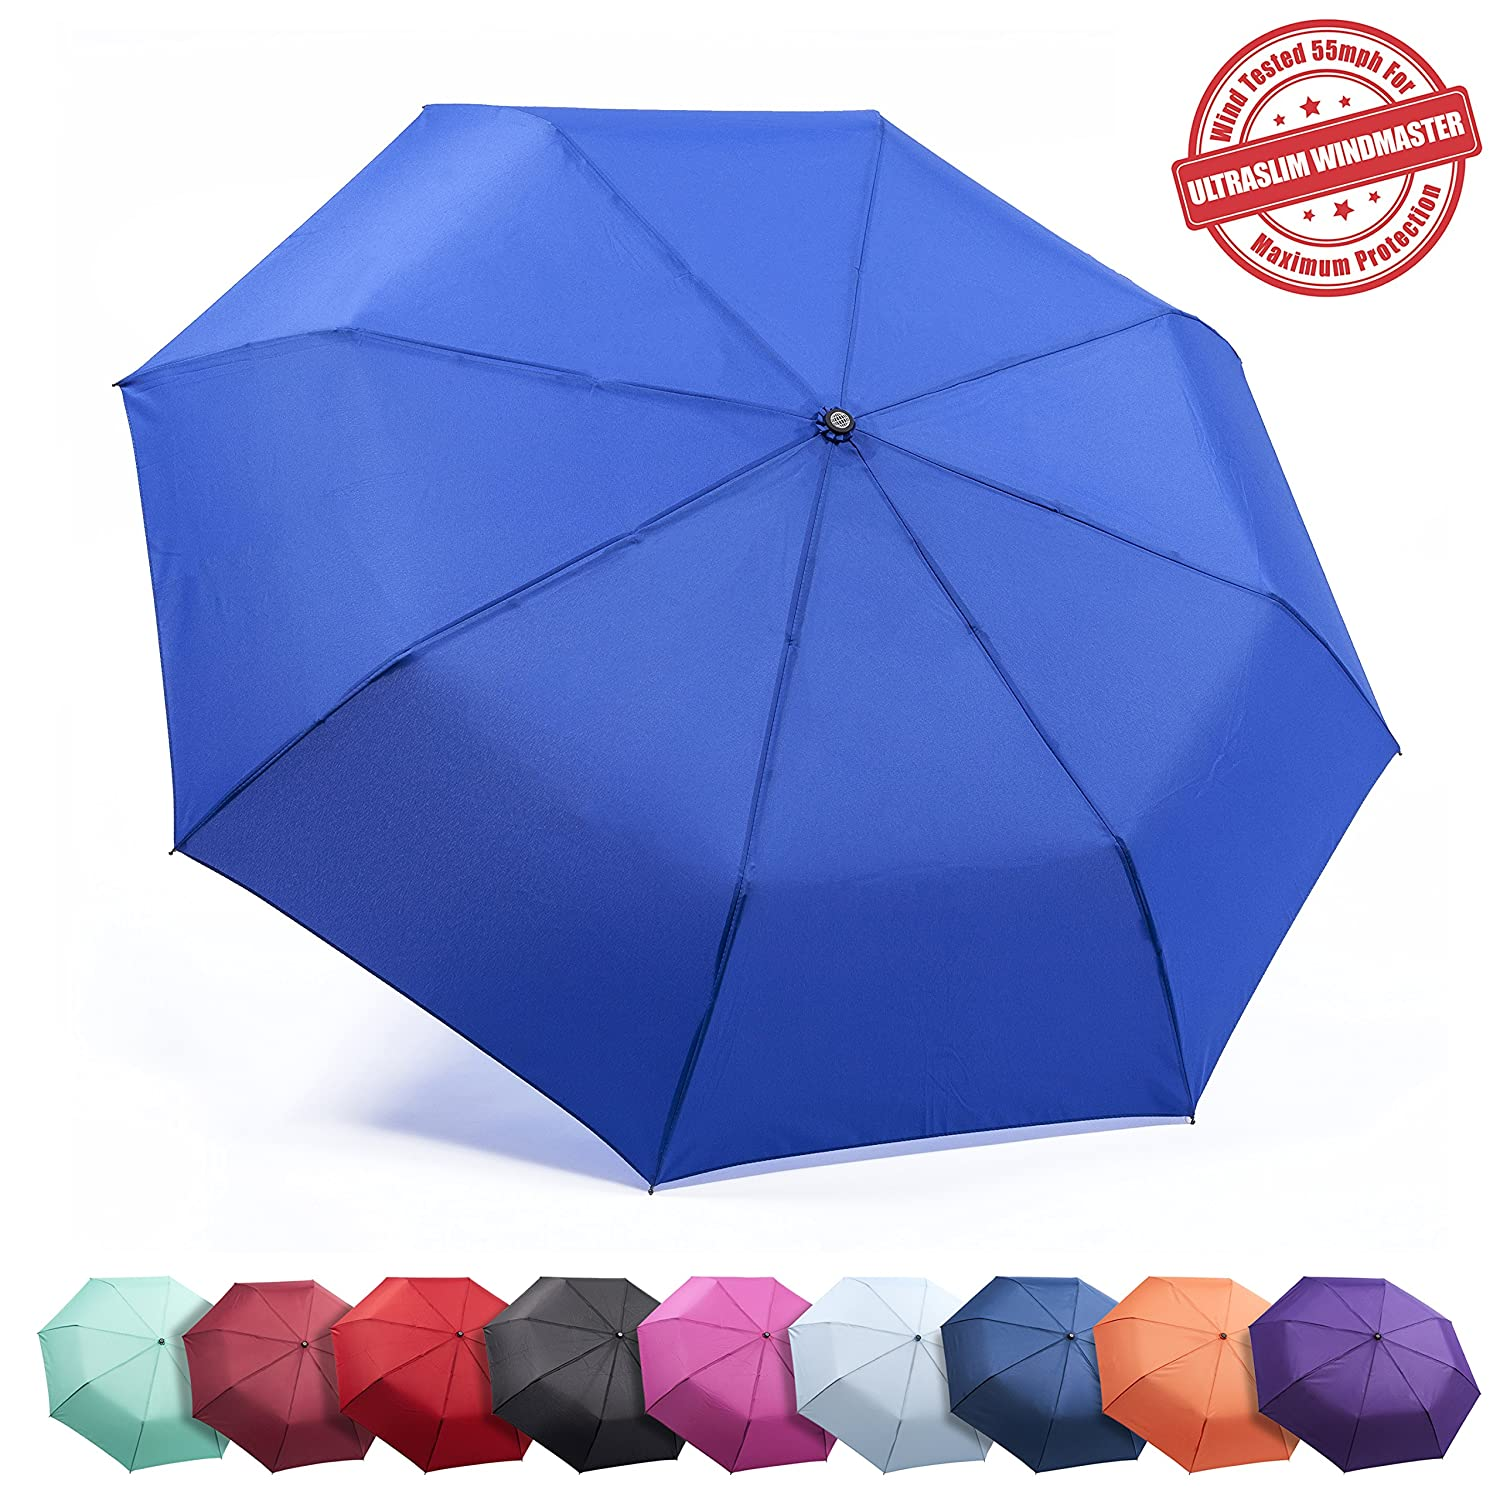 Top 10 Best Umbrellas Reviews in 2020 1